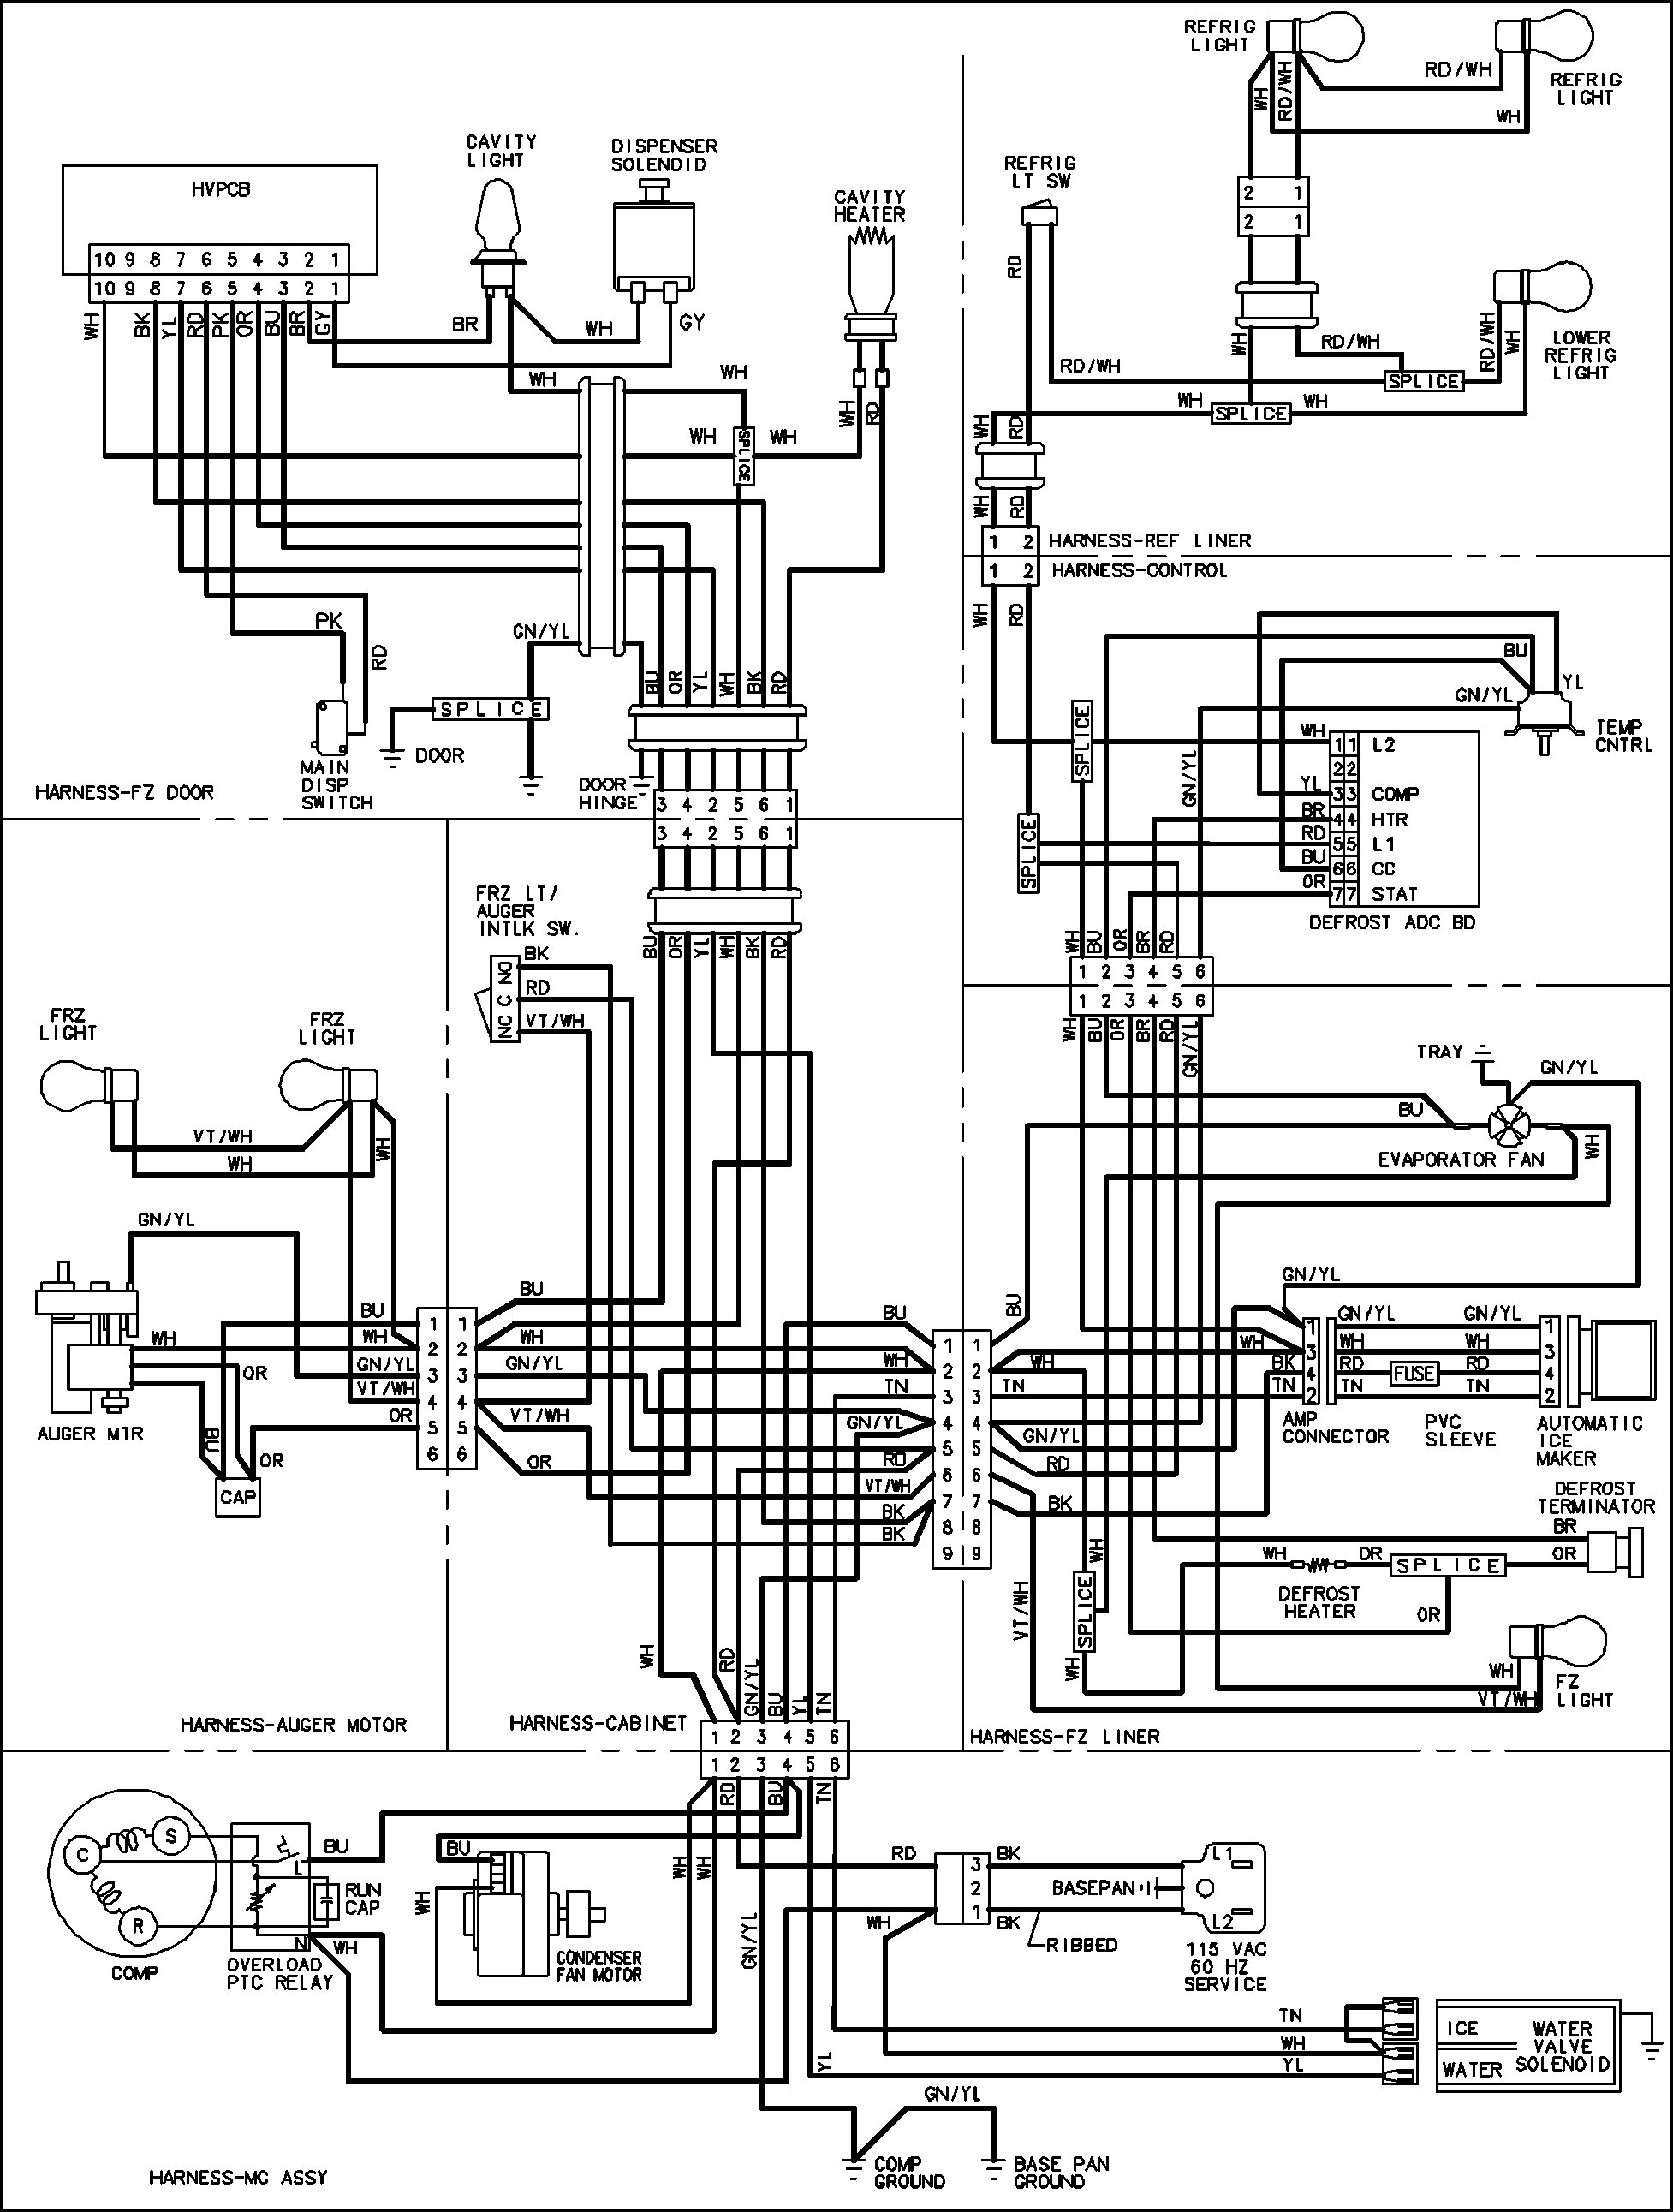 WIRING INFORMATION (SERIES 50) Diagram & Parts List for